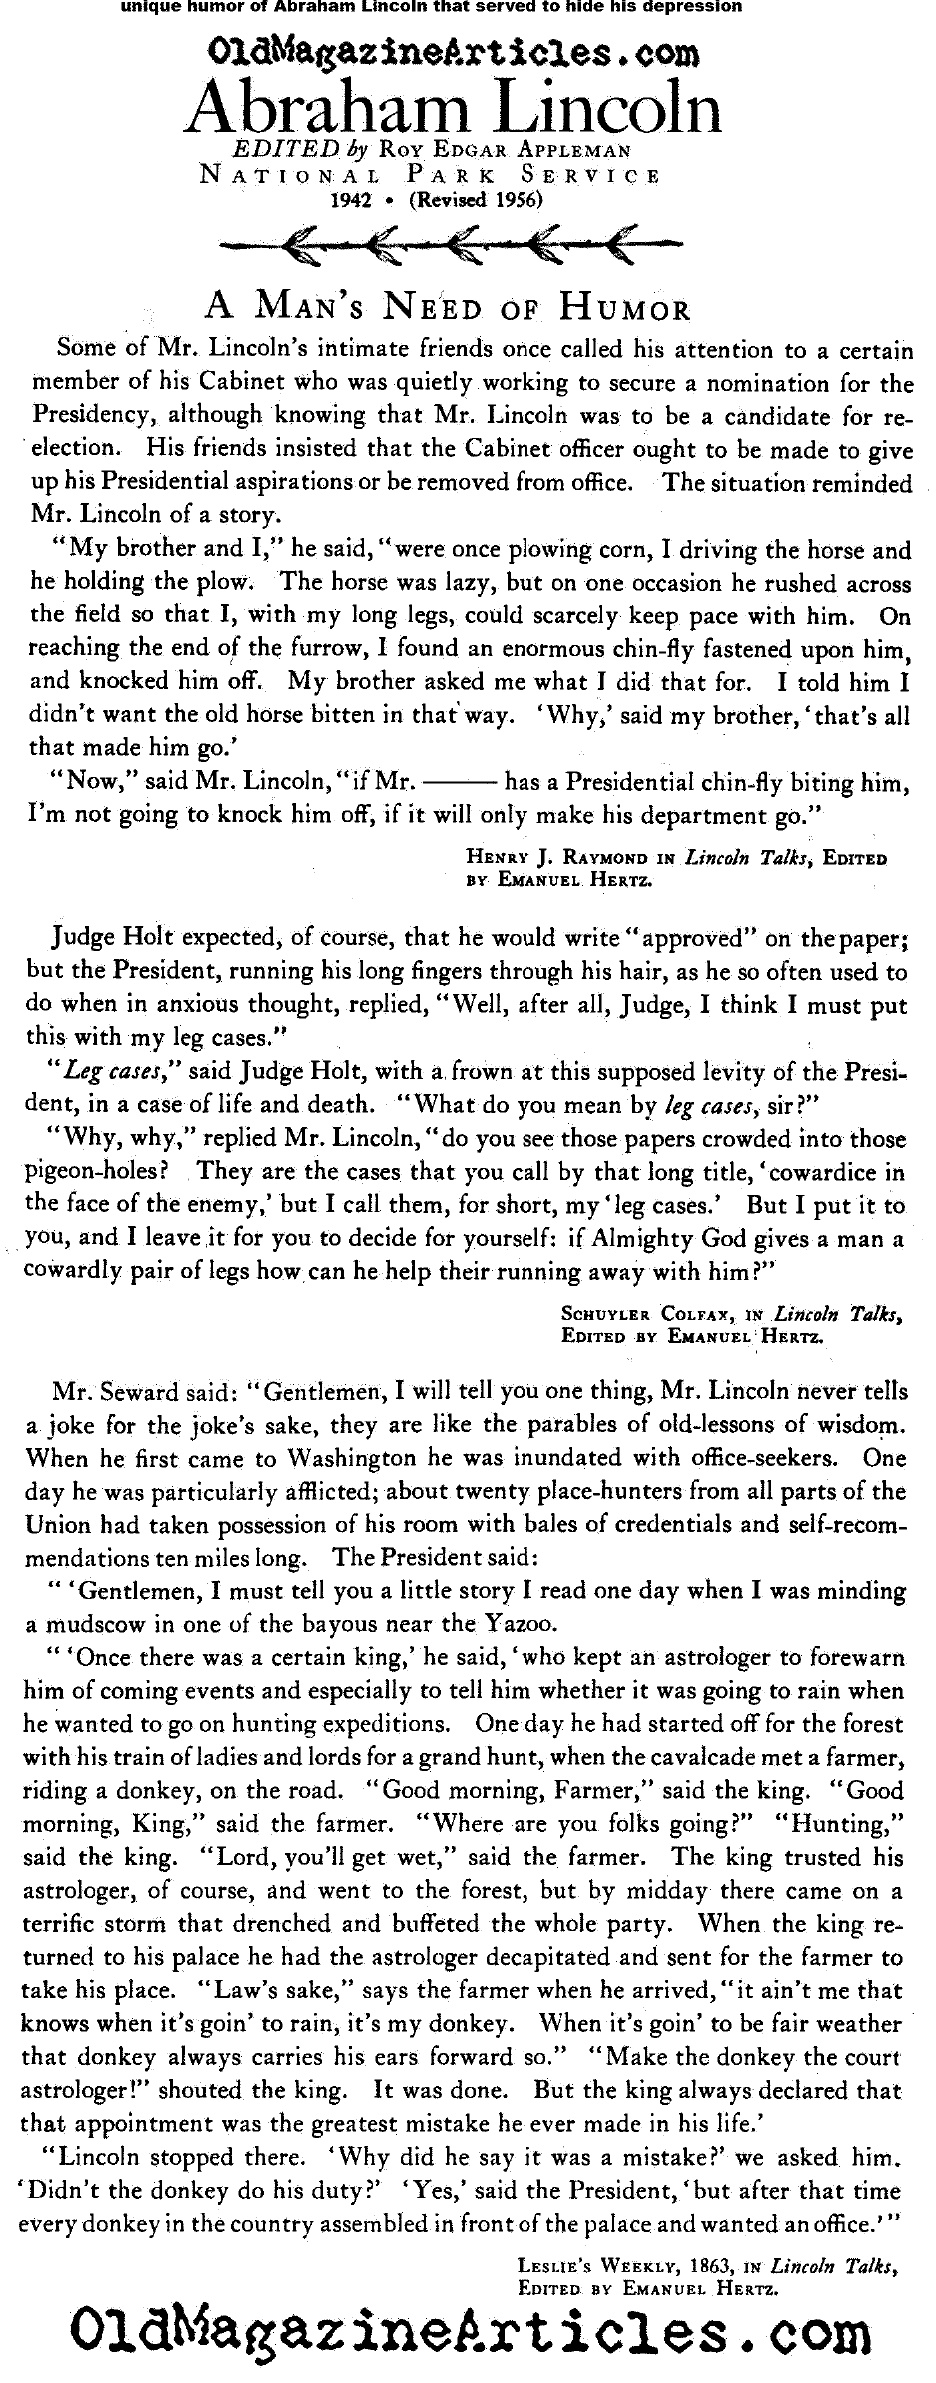 The Depression and Humor of President Lincoln (National Park Service, 1956)